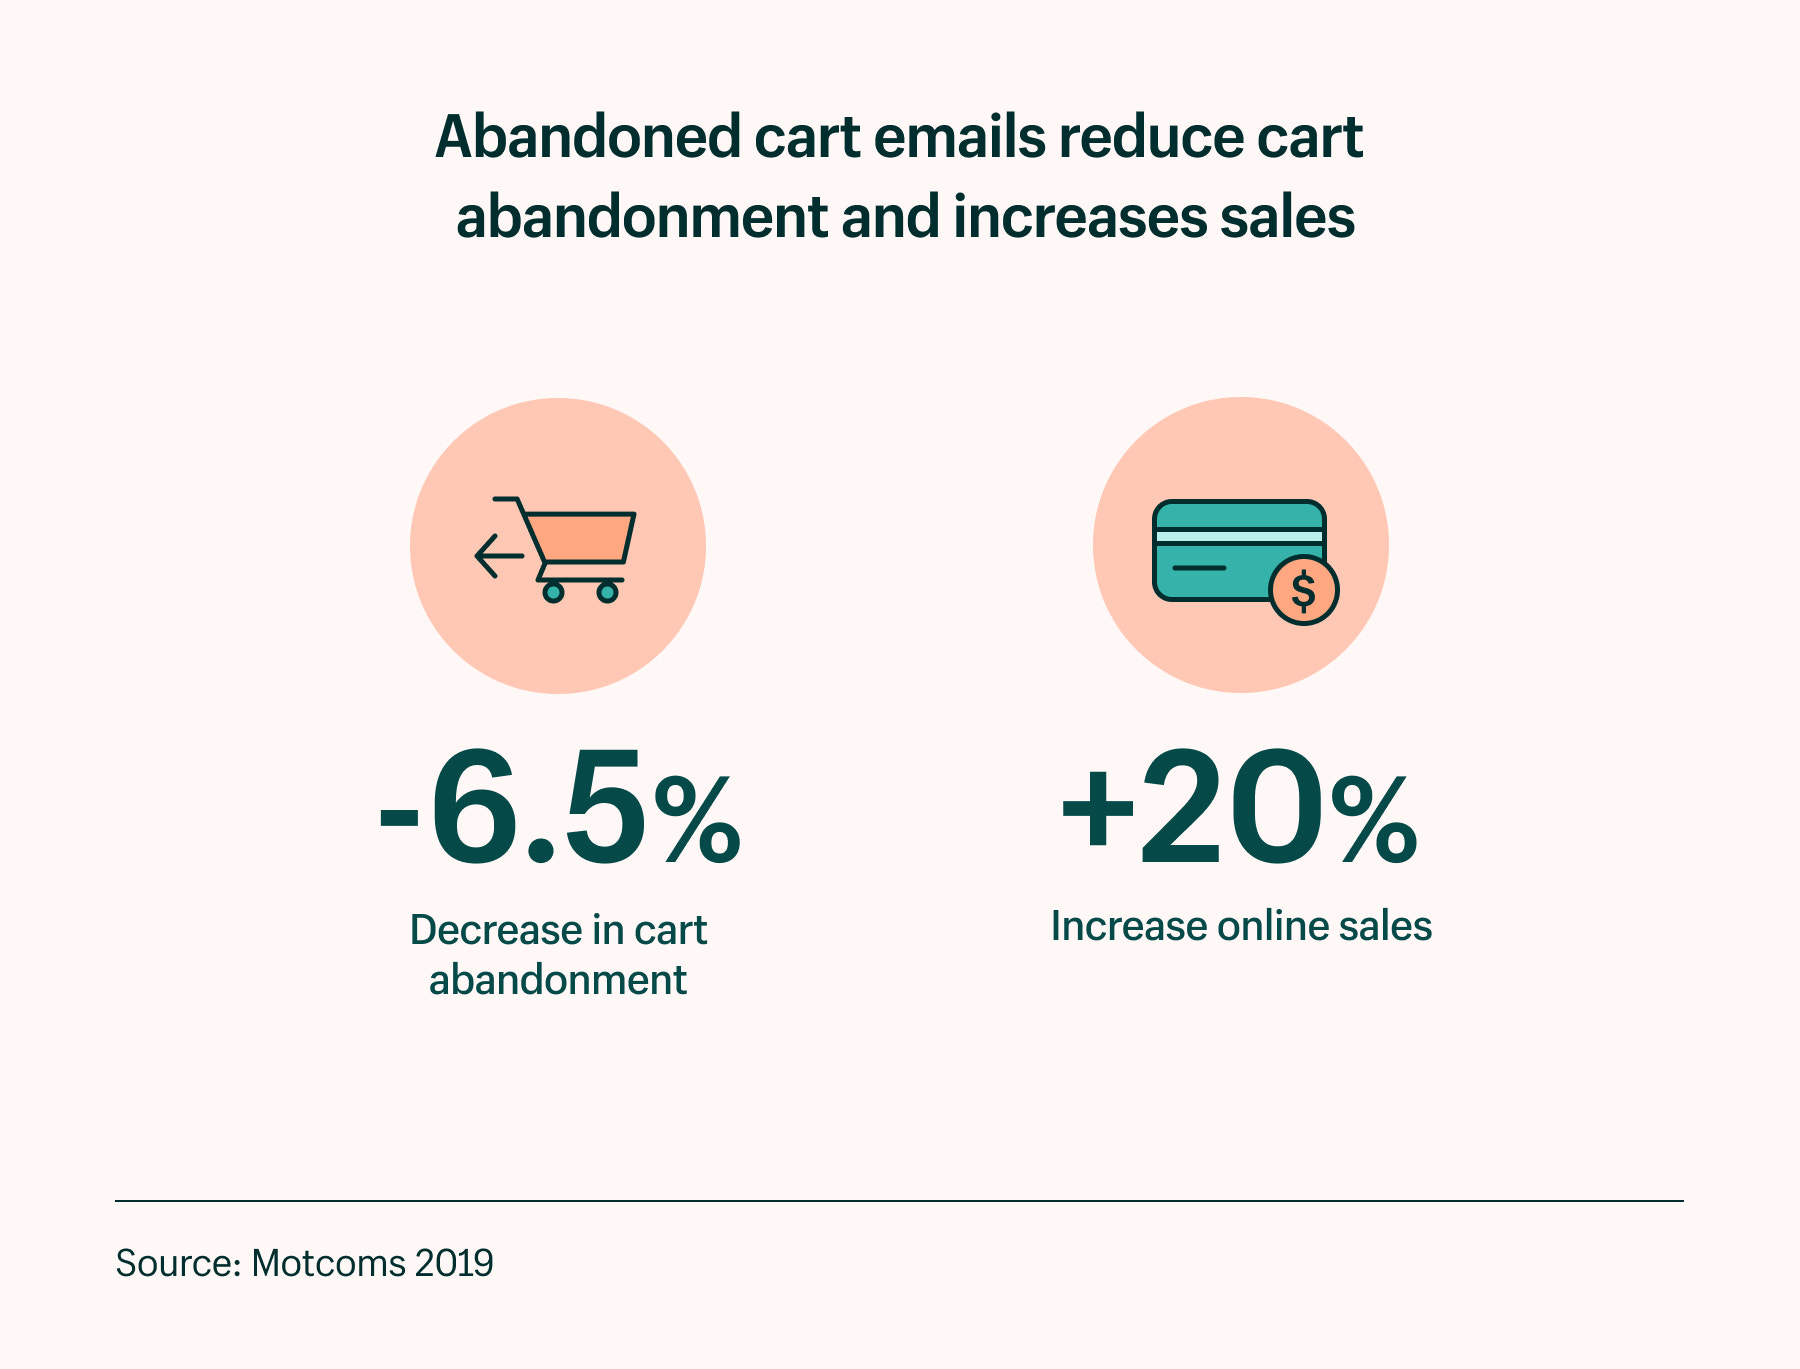 abandoned cart emails reduce cart abandonment and increases online sales